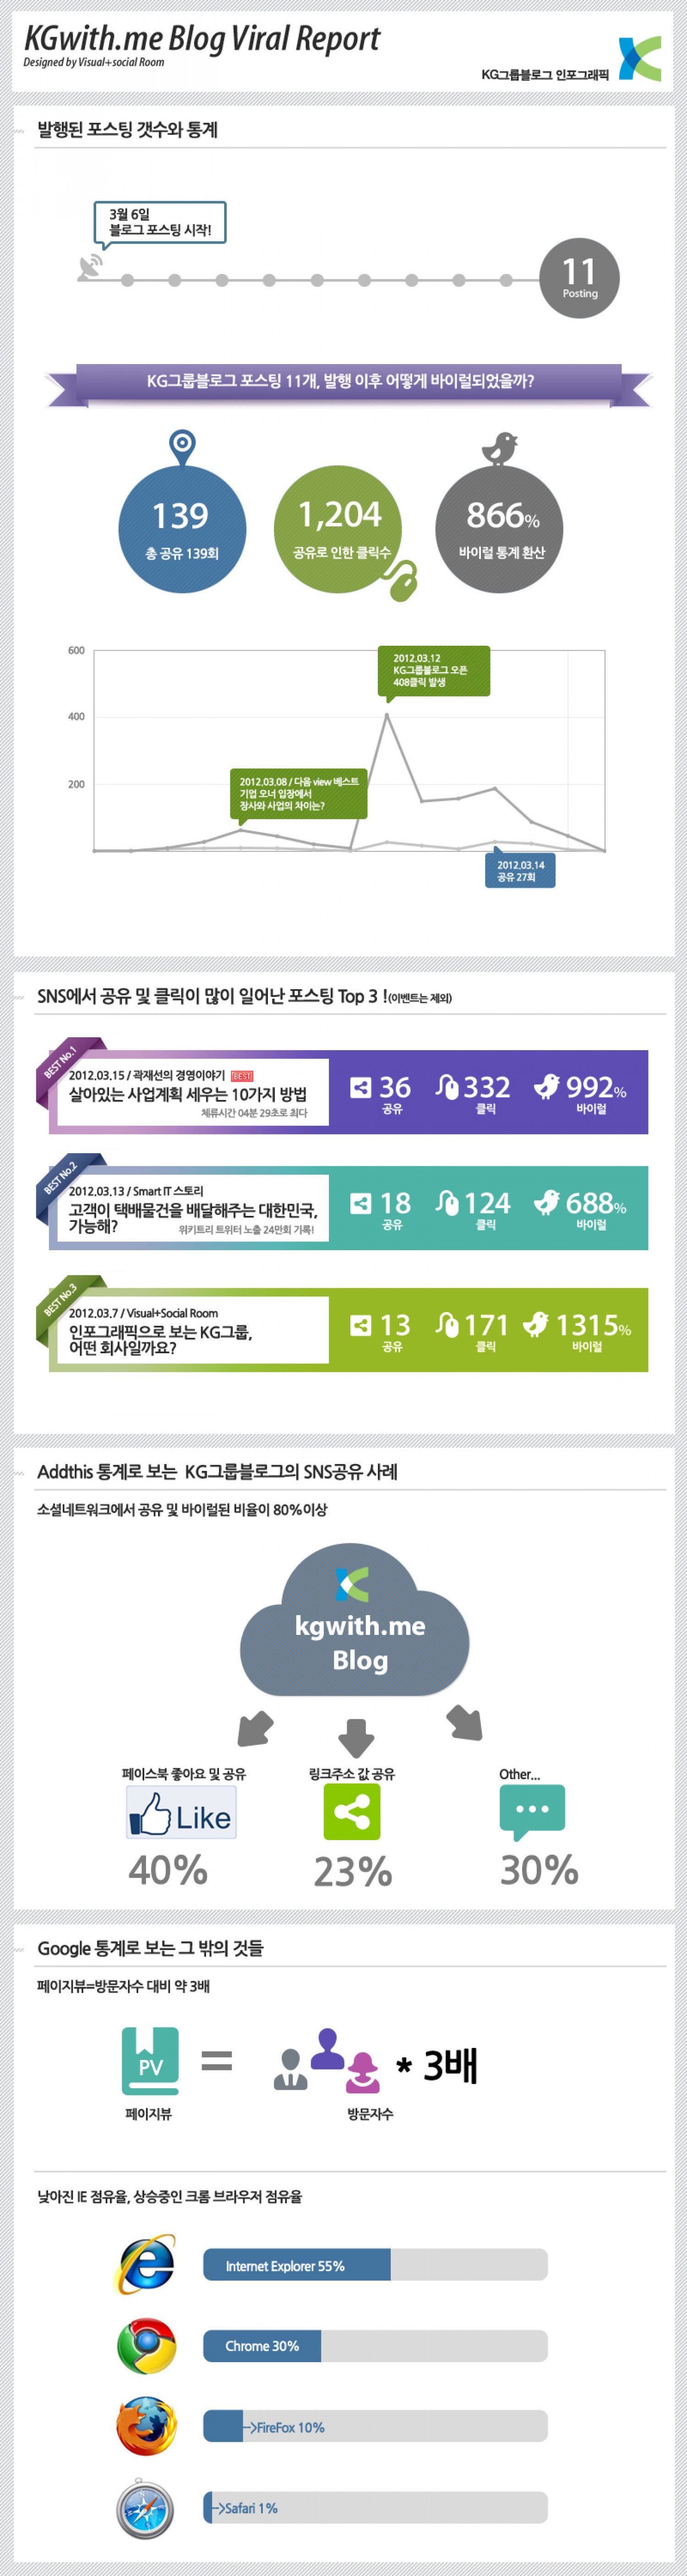 KGwithme Infographic & Social stats Infographic